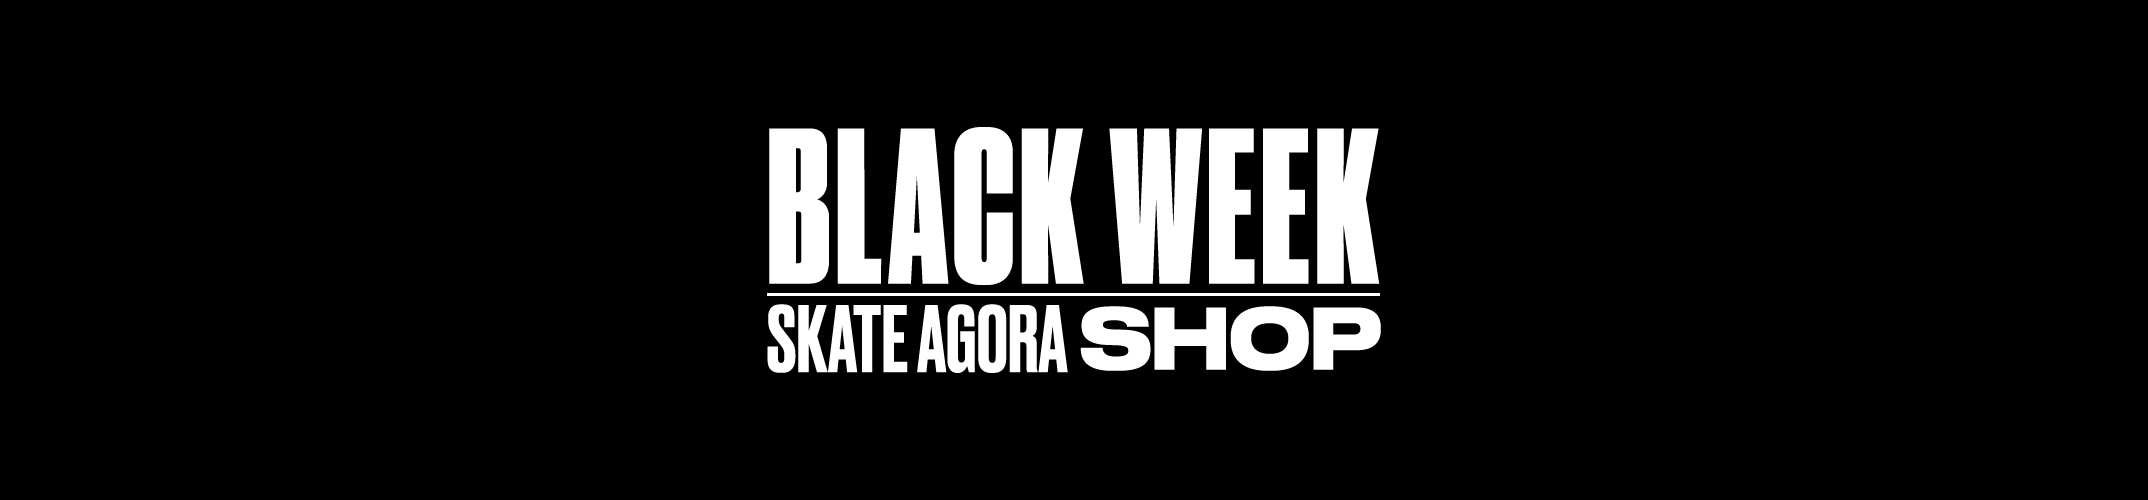 ¡No solo Black Friday, en Skate Agora Shop empieza la Black Week!